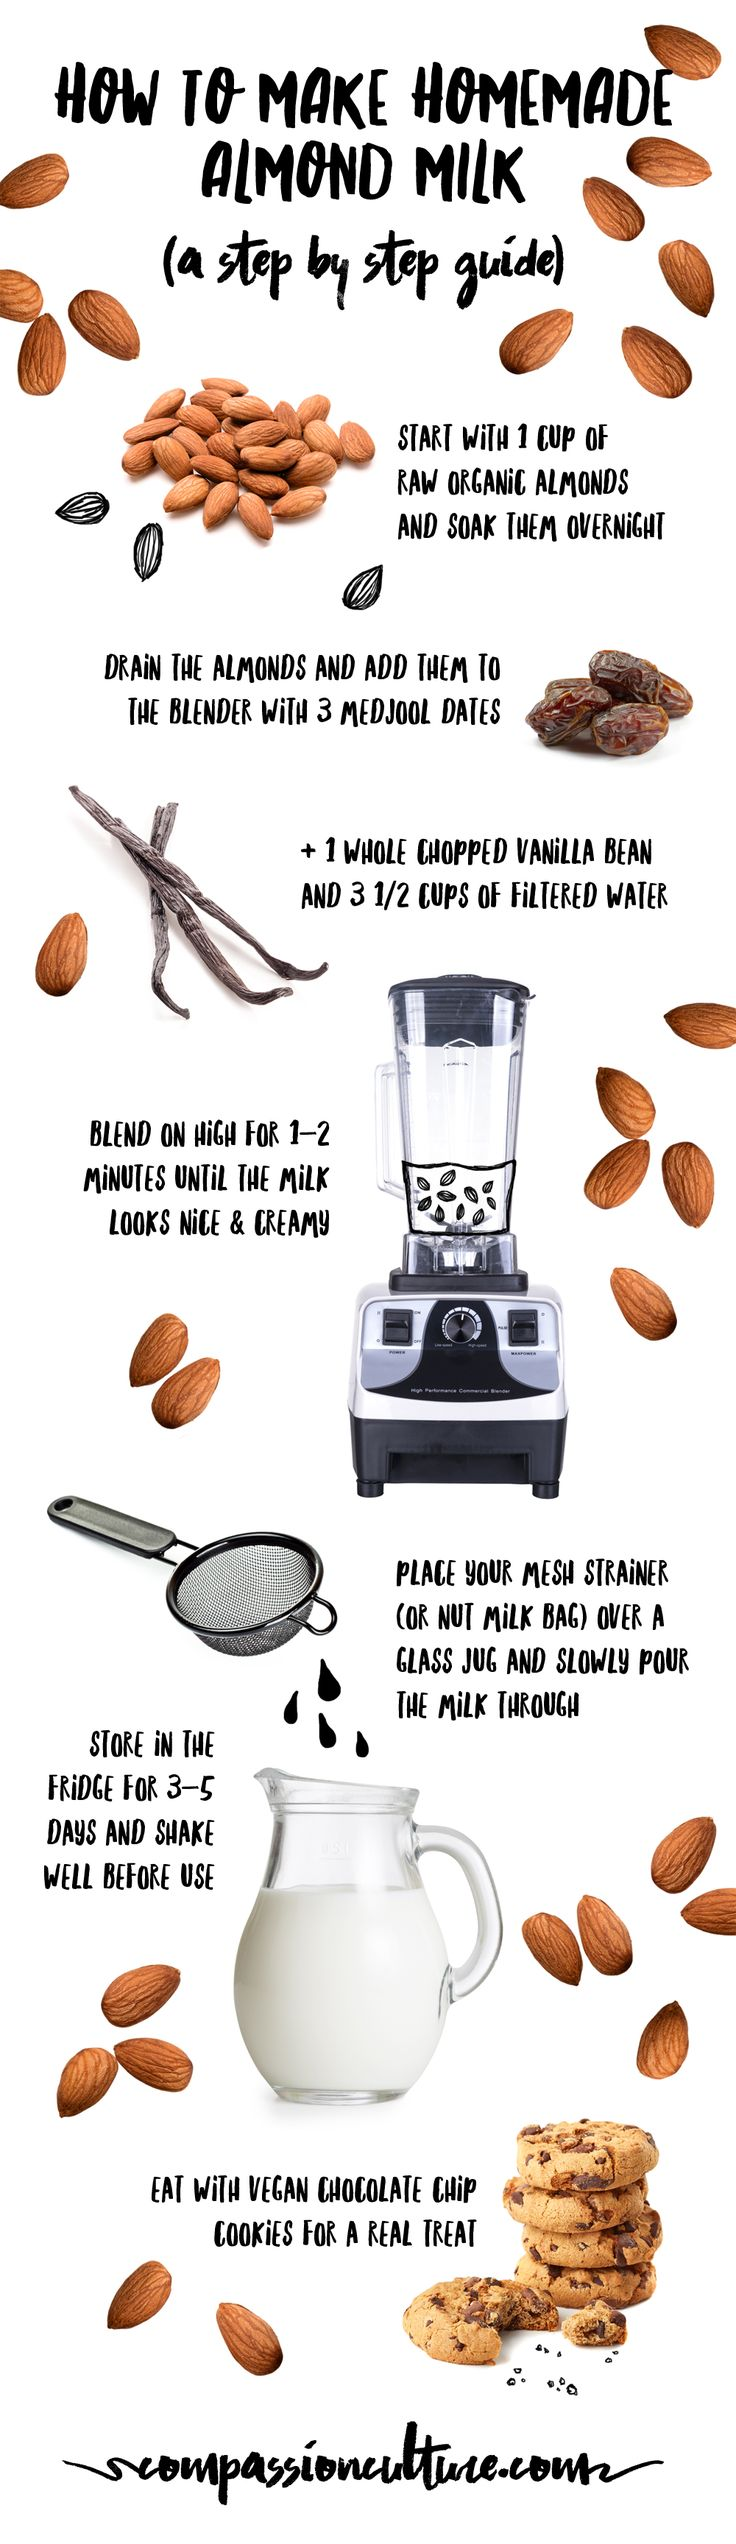 DIY How to make homemade almond milk easy step by step guide #plantbased #diet #crueltyfree milk